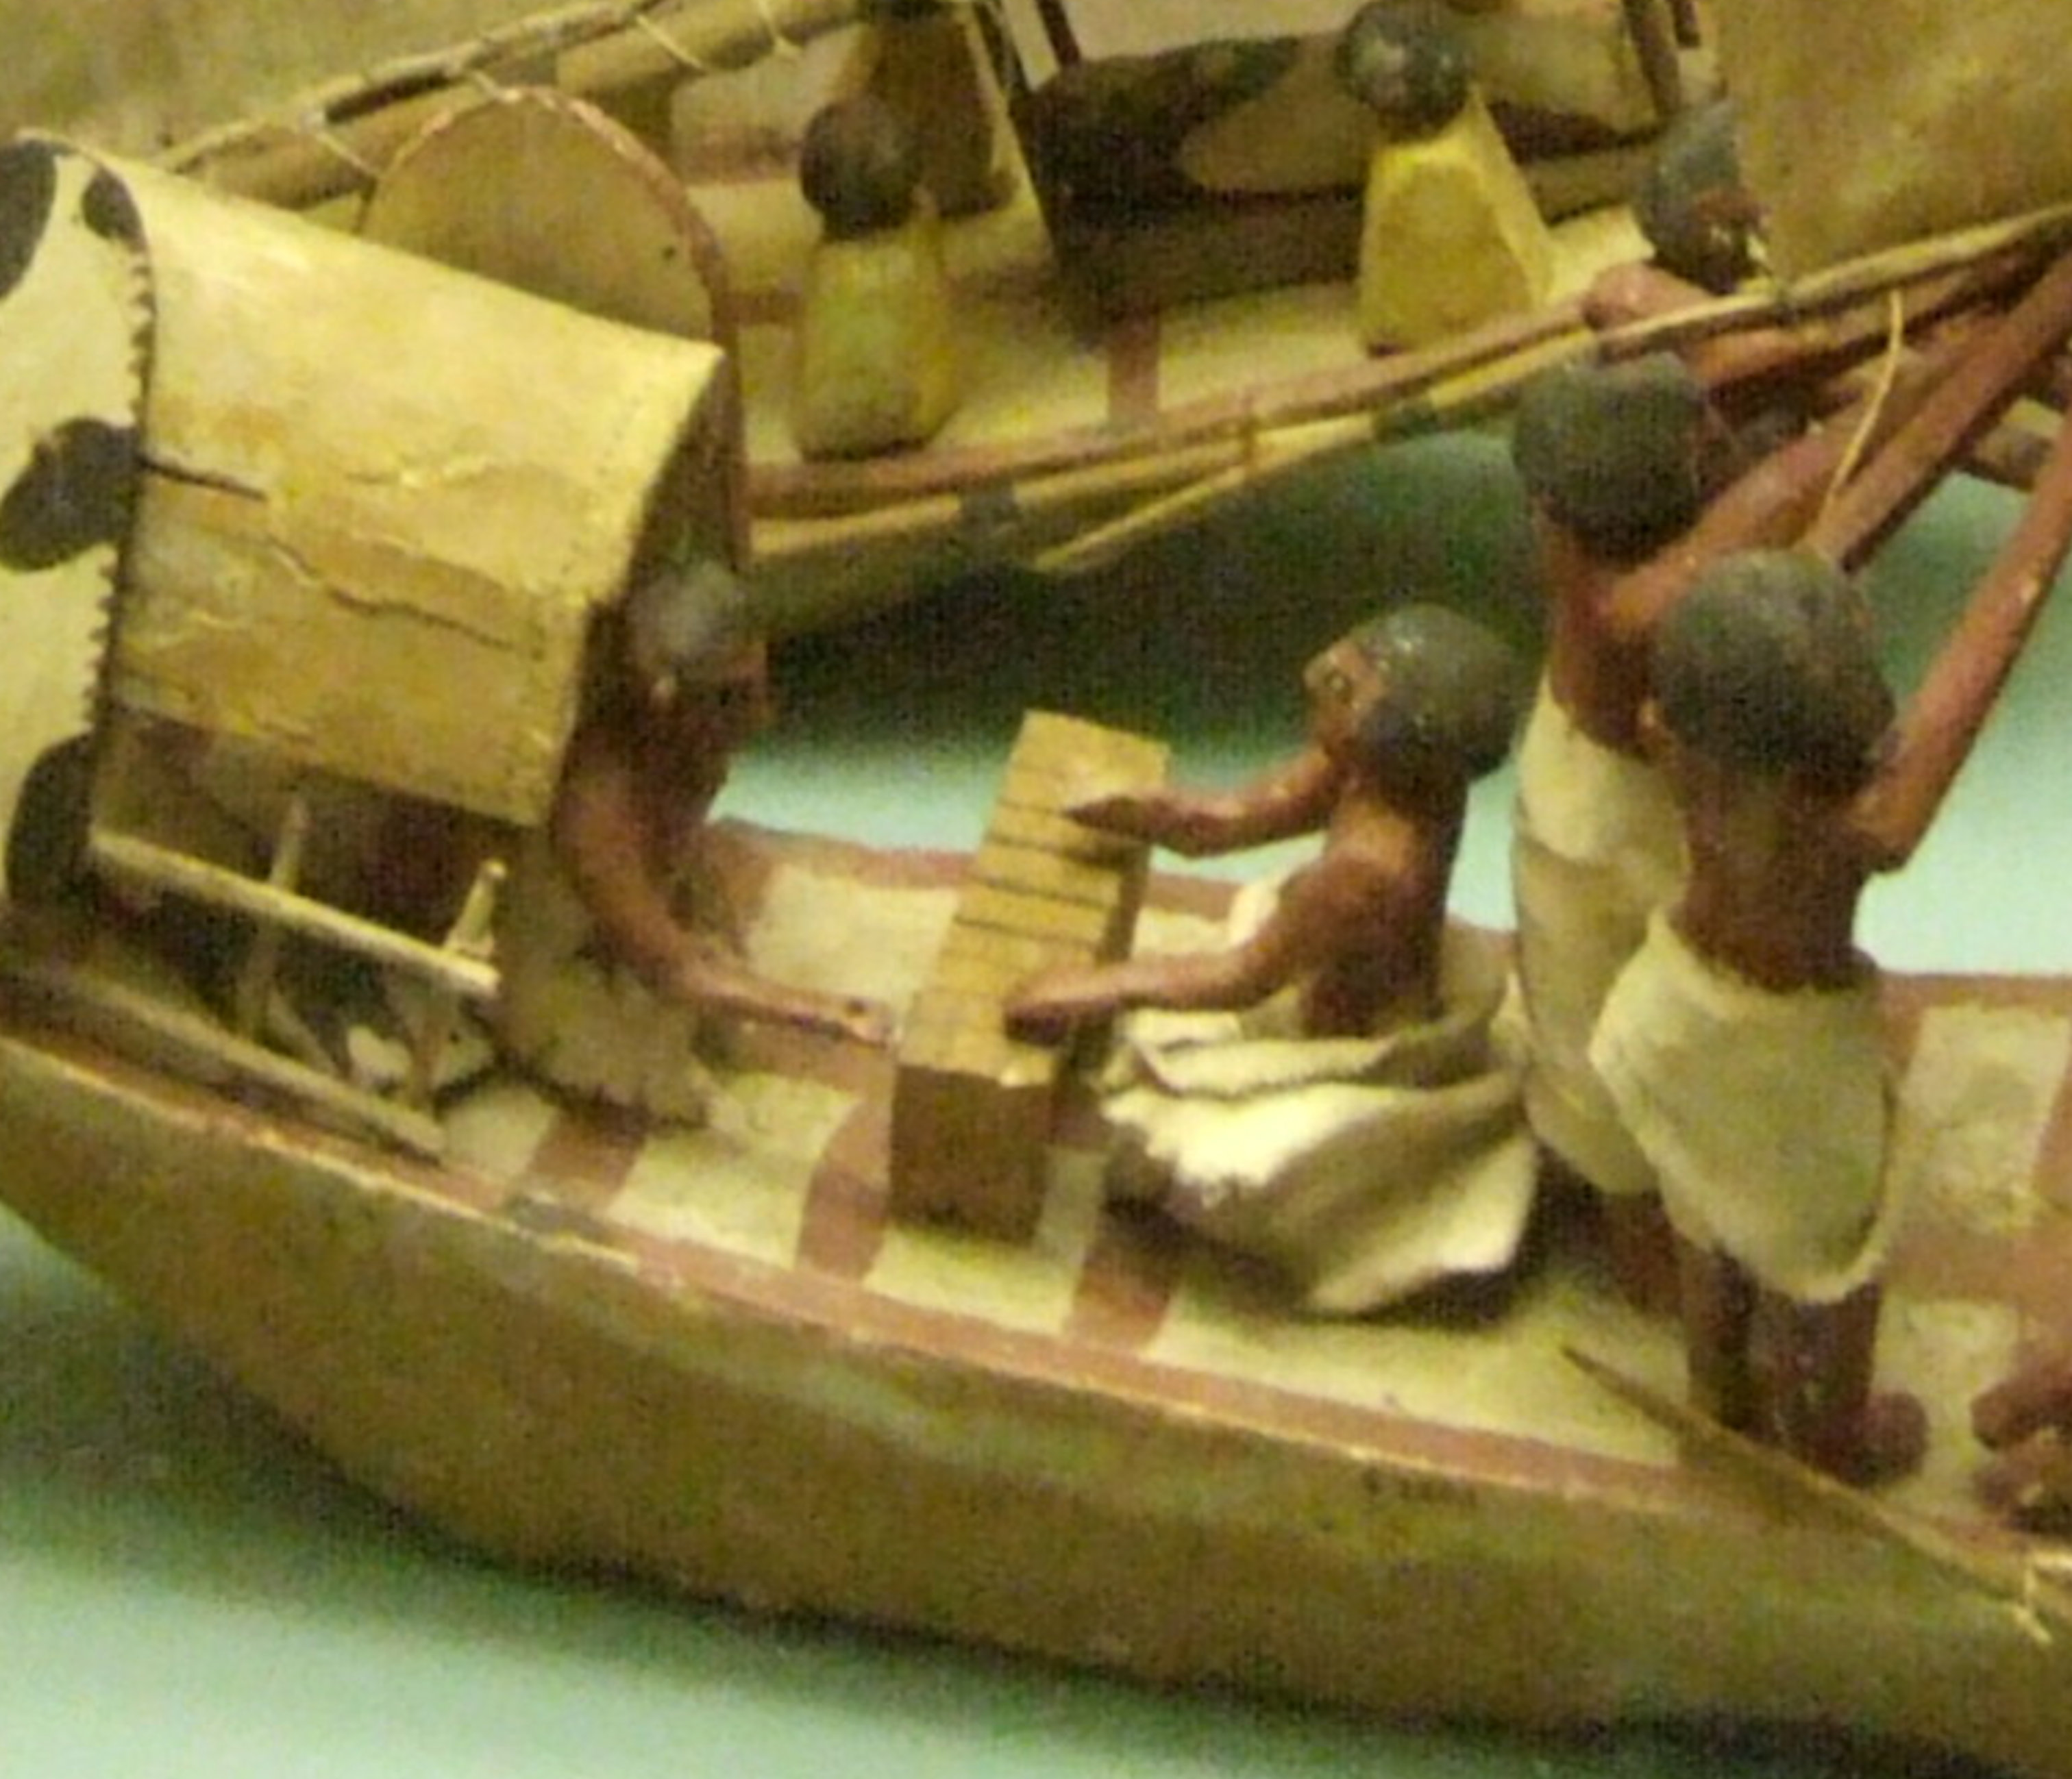 Closeup of two sailors playing the game of Men, which can be identified by vertical lines going across the gaming board. From the Tomb of Nefwa at Beni Hasan, Egypt. IXth - XIth Dynasty (c. 2125 - c. 1940 BC). Ashmolean Museum, E2301. Photo: Rex Harris, December 15, 2009.